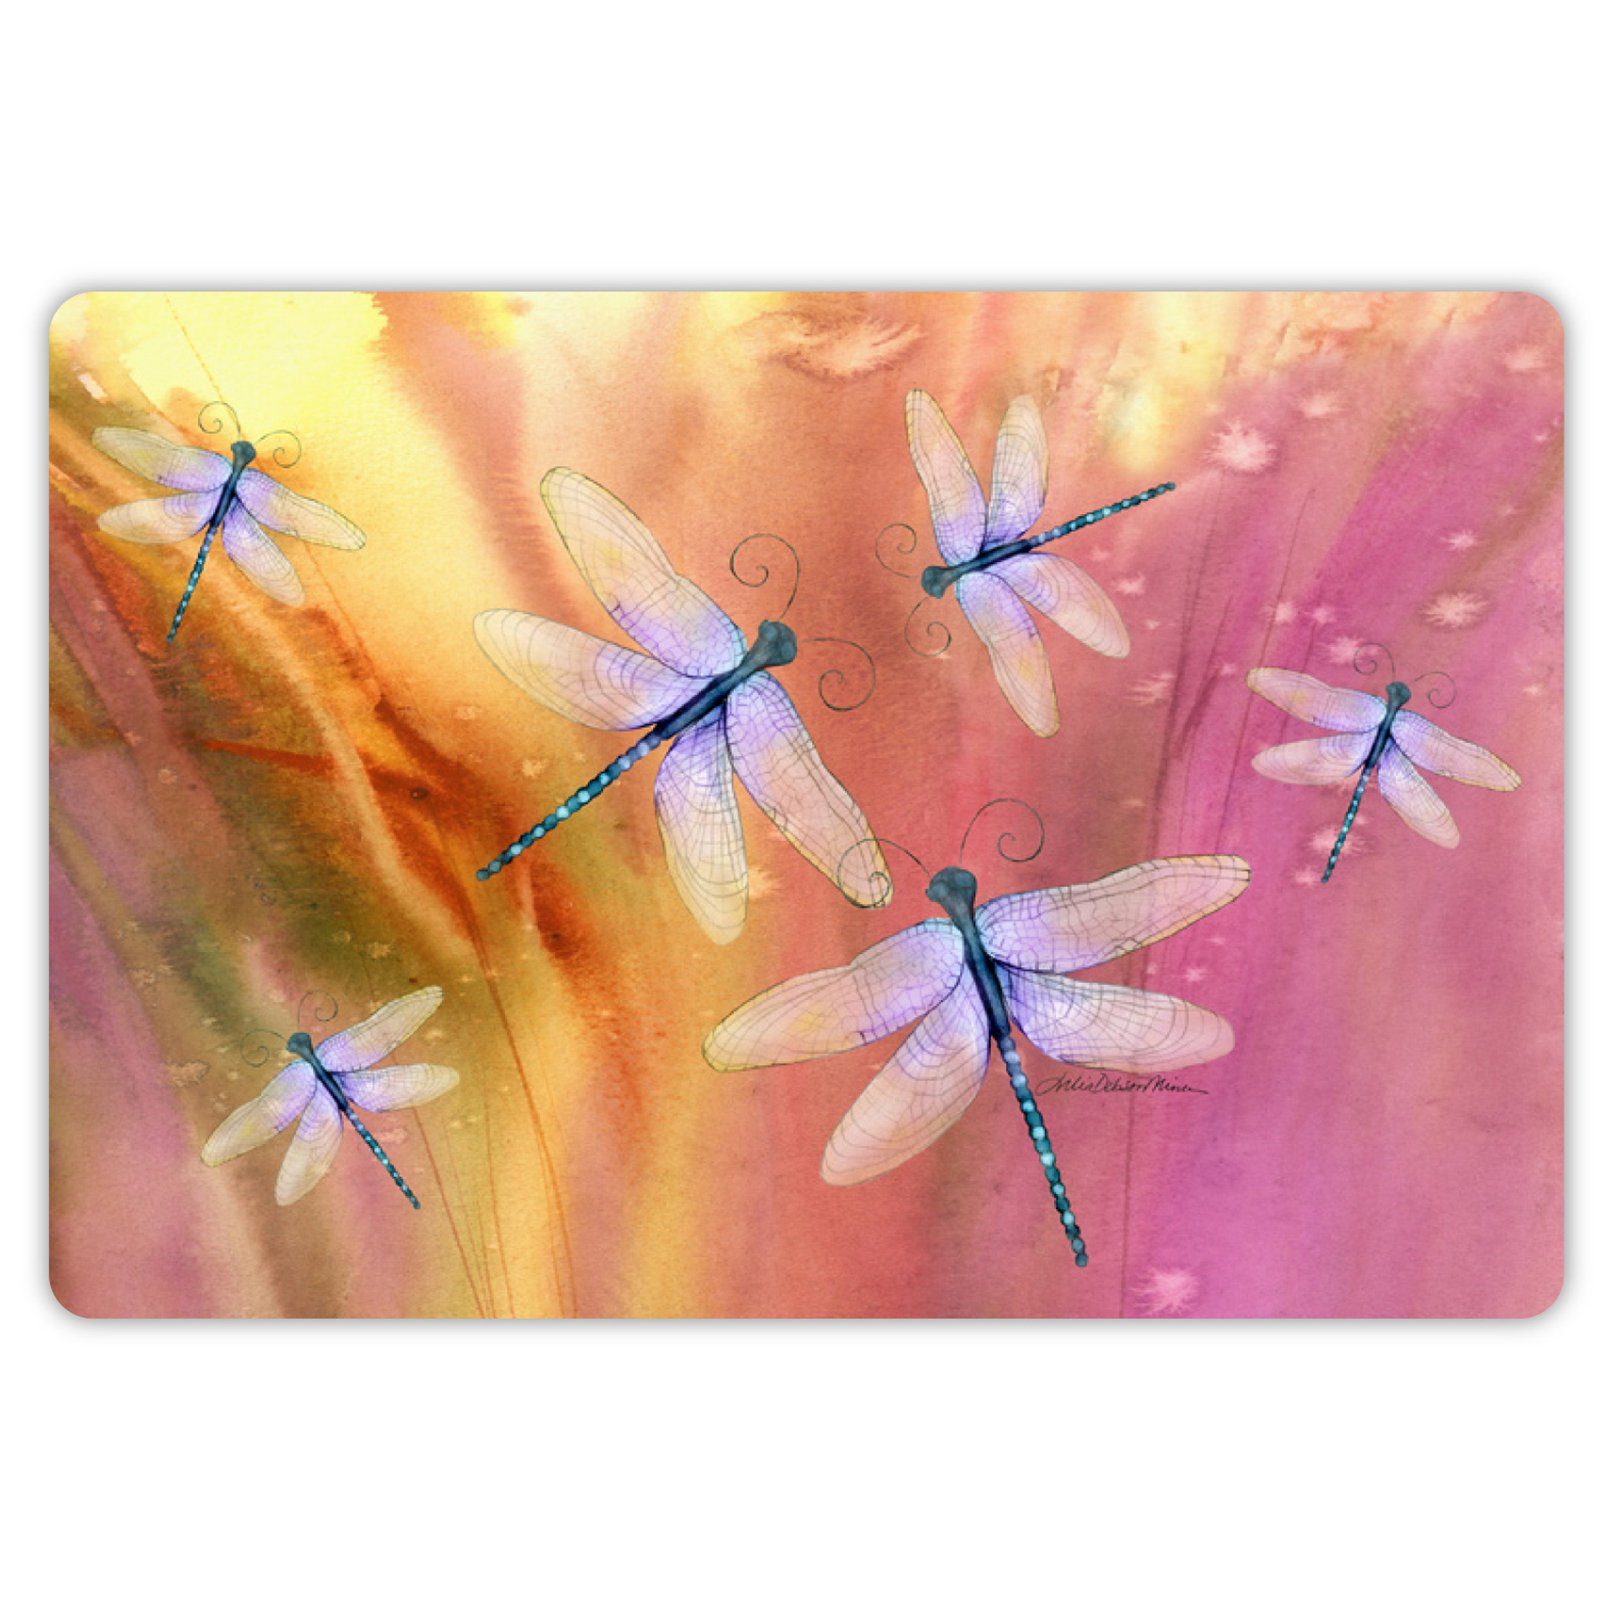 Drymate Spring/Summer Collection Welcome Mat - Dragonflies